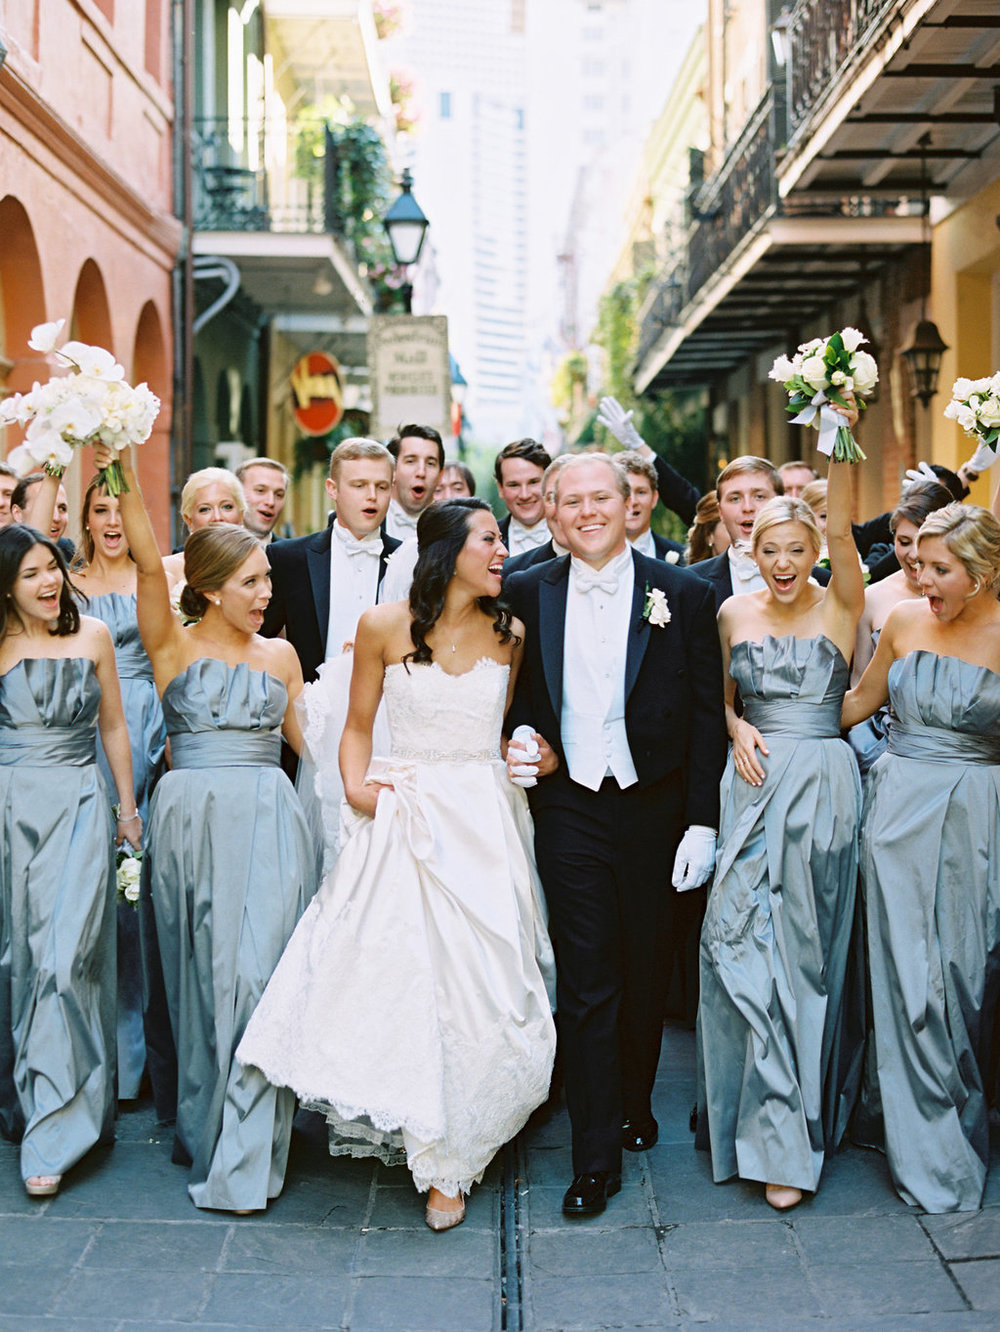 Wedding Planning | New Orleans Wedding | French Quarter Wedding | Sapphire Events | Ryan Ray Photography | White and Green Wedding | Formal Black Tie Wedding | Monique Lhuillier Dress | Tux with Tails | Gray and white wedding | Grey and White wedding | Bridal Party Photo | Exchange Alley | New Orleans Wedding